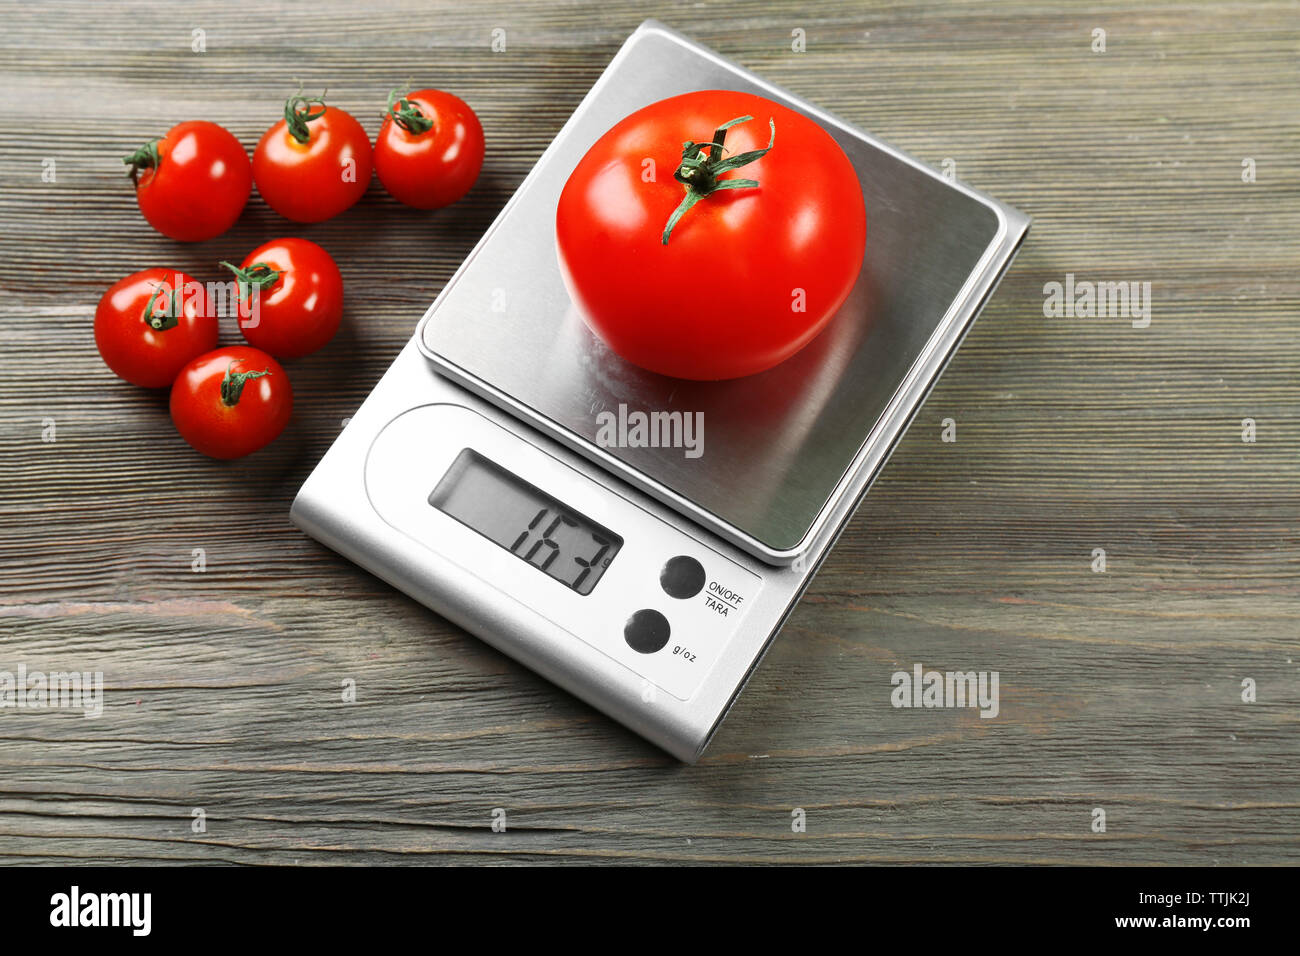 Tomatoes with digital kitchen scales on wooden background - Stock Image